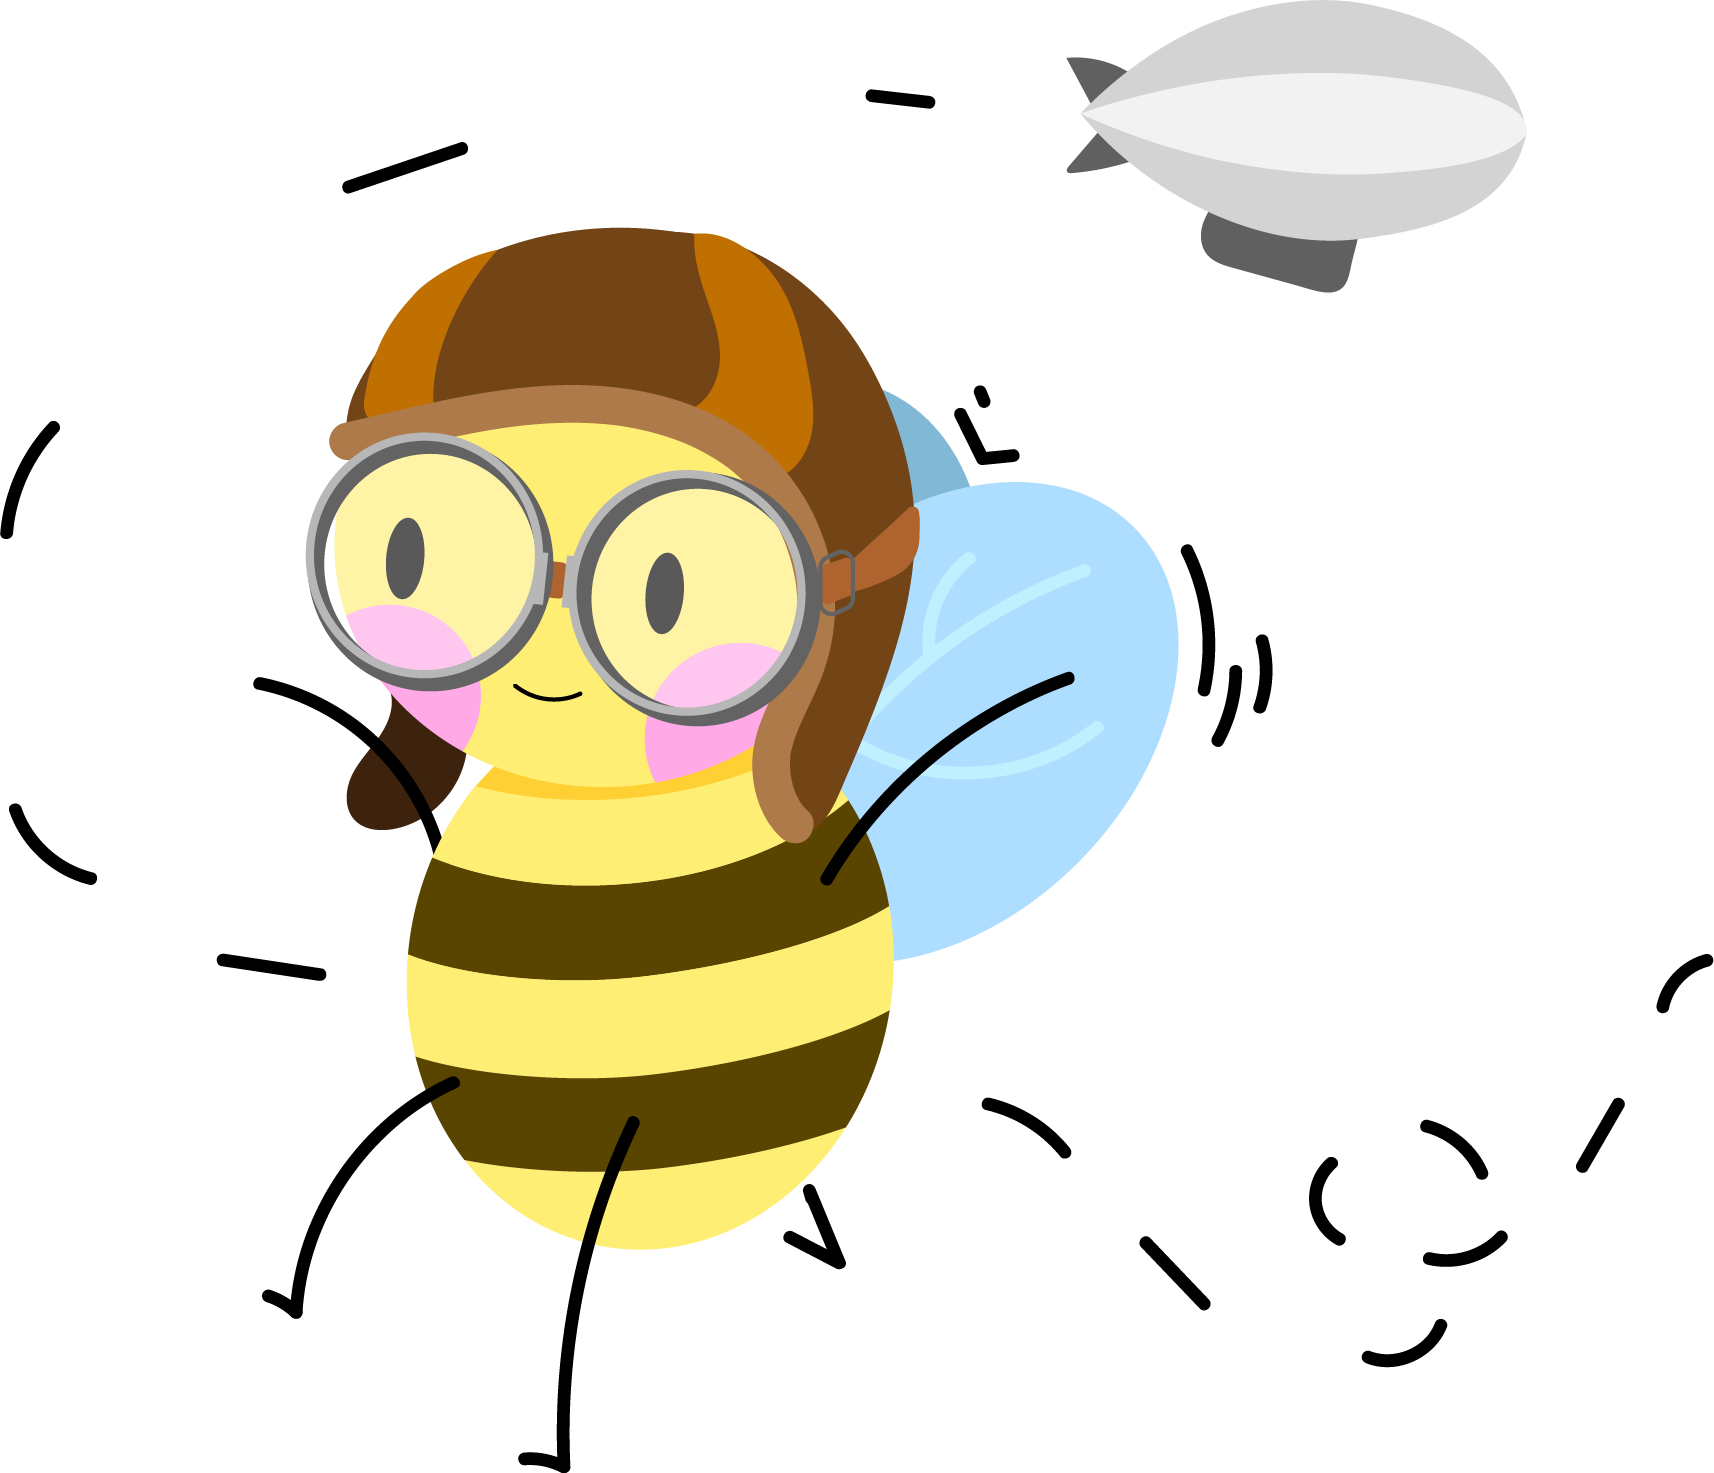 DVMT_DCON_Bee_Graphic_1920_Robin.png